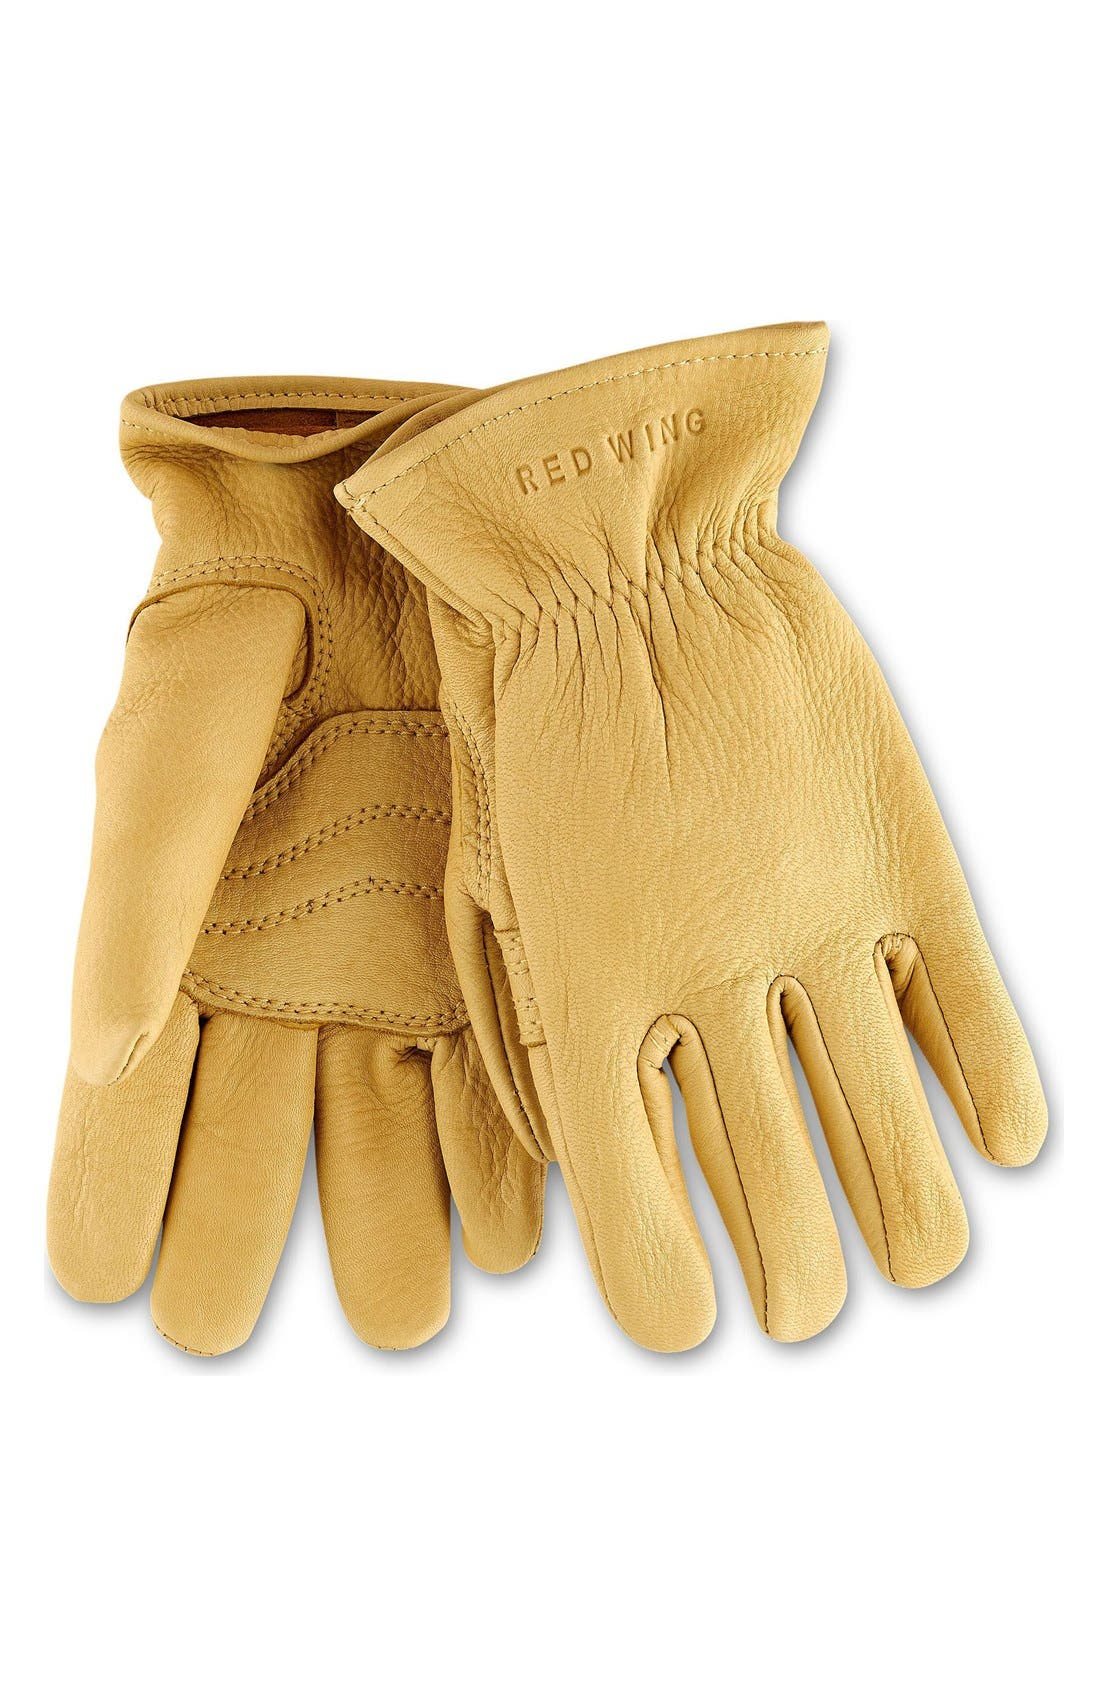 Alternate Image 1 Selected - Red Wing Buckskin Leather Gloves